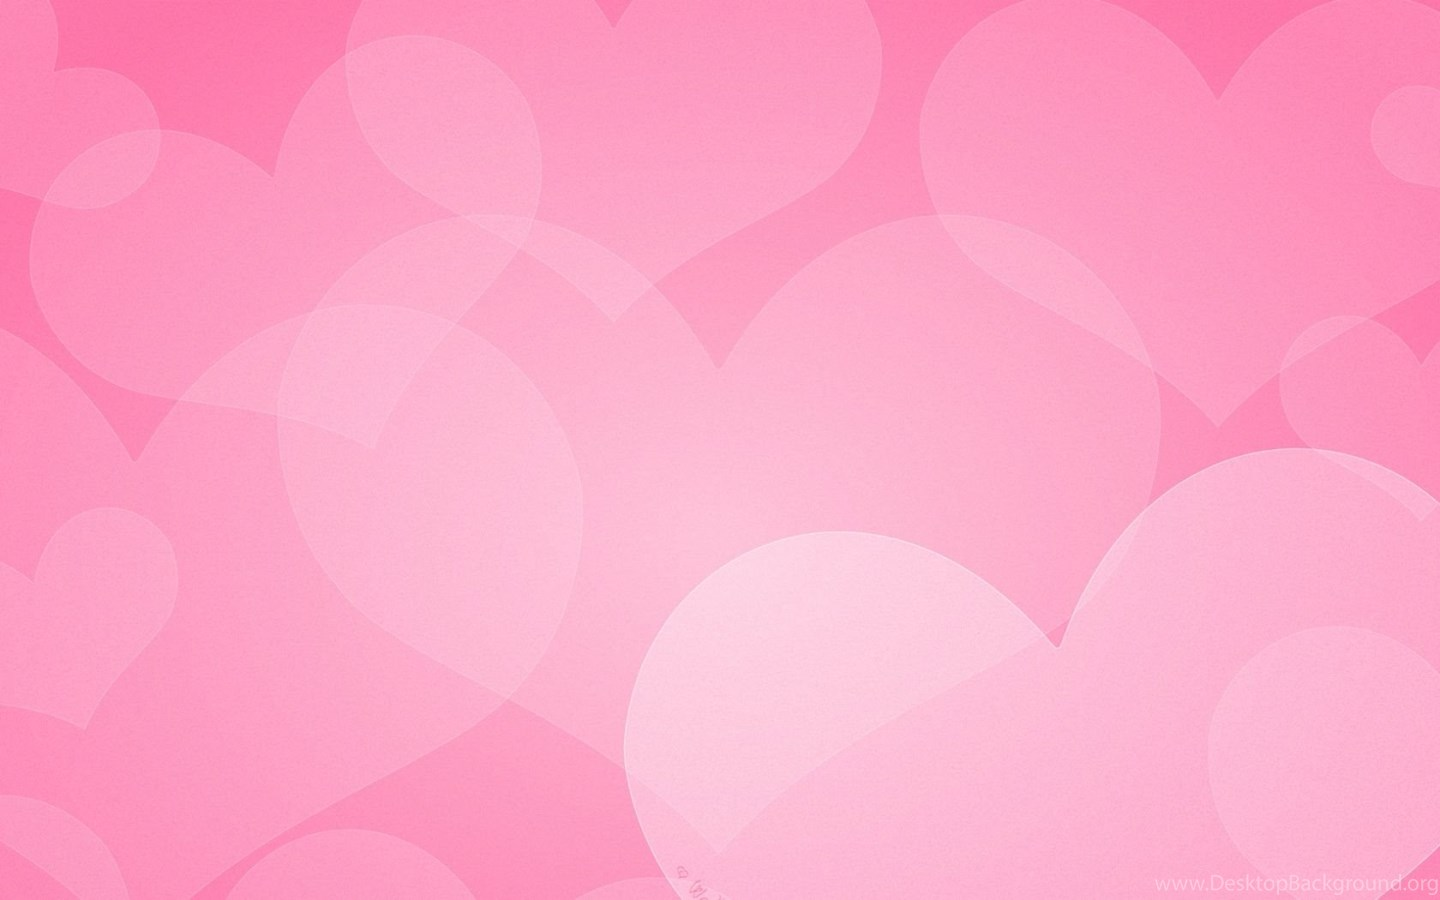 Pink hearts backgrounds wallpapers cave desktop background - Pink roses and hearts wallpaper ...